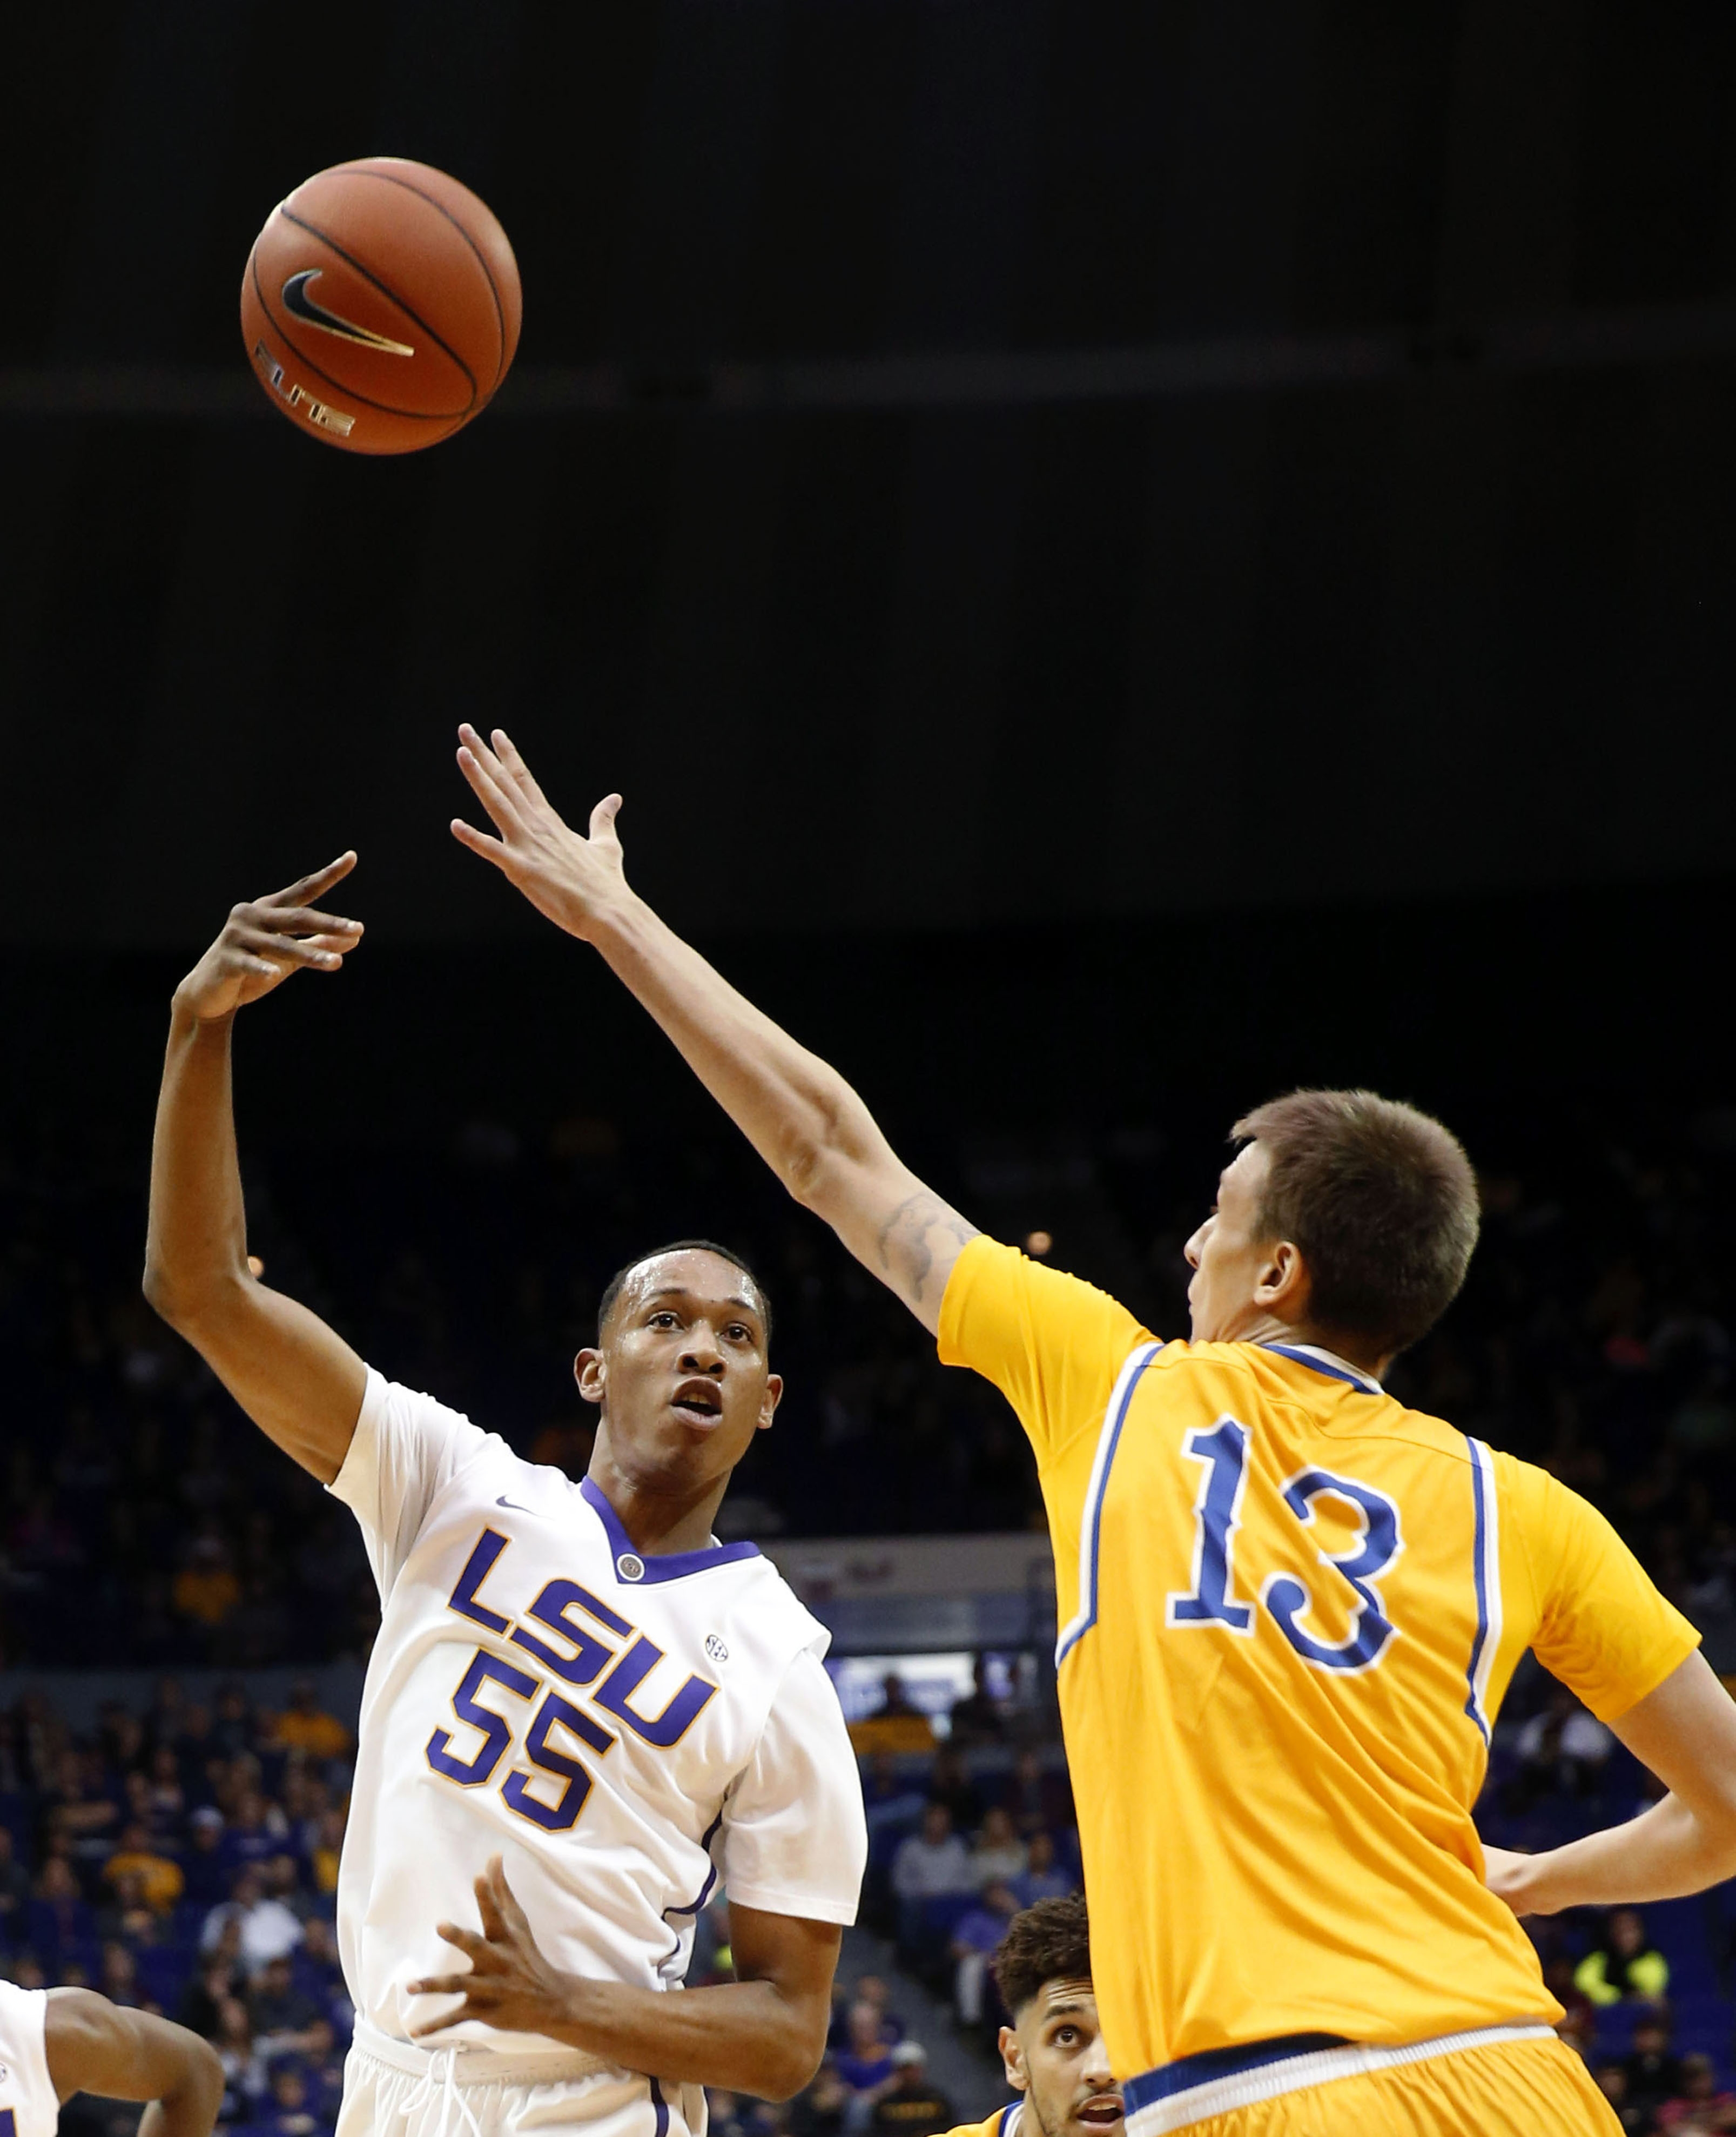 LSU guard Tim Quarterman (55) passes against McNeese State center Matthew Moss (13) in the first half of an NCAA college basketball game in Baton Rouge, La., Friday, Nov. 13, 2015. (AP Photo/Gerald Herbert)